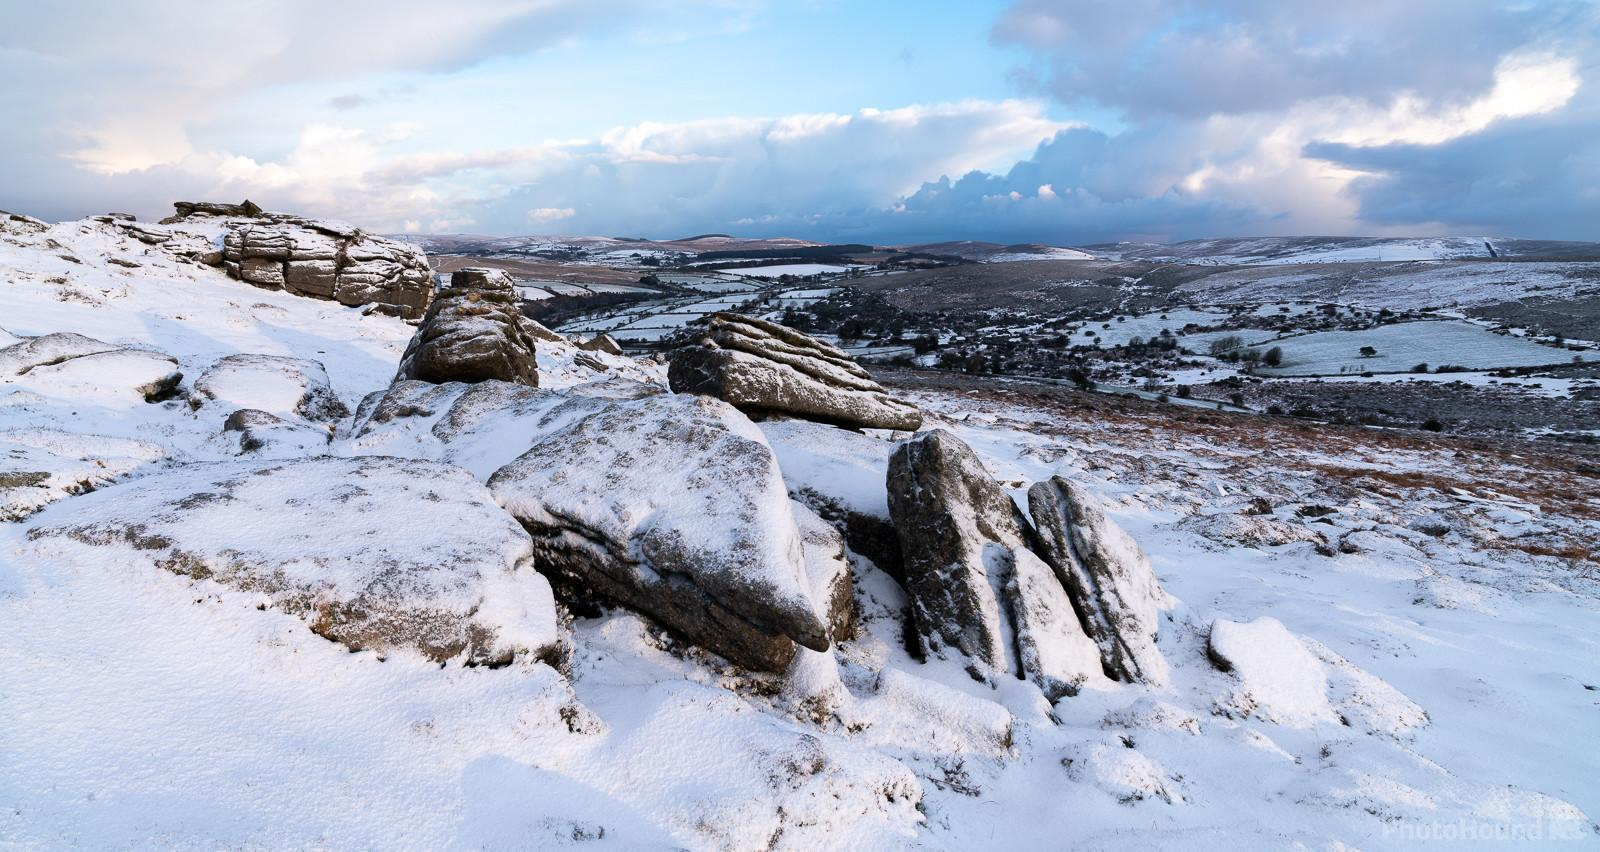 Yar Tor looking northeast on a snowy sunrise in winter.